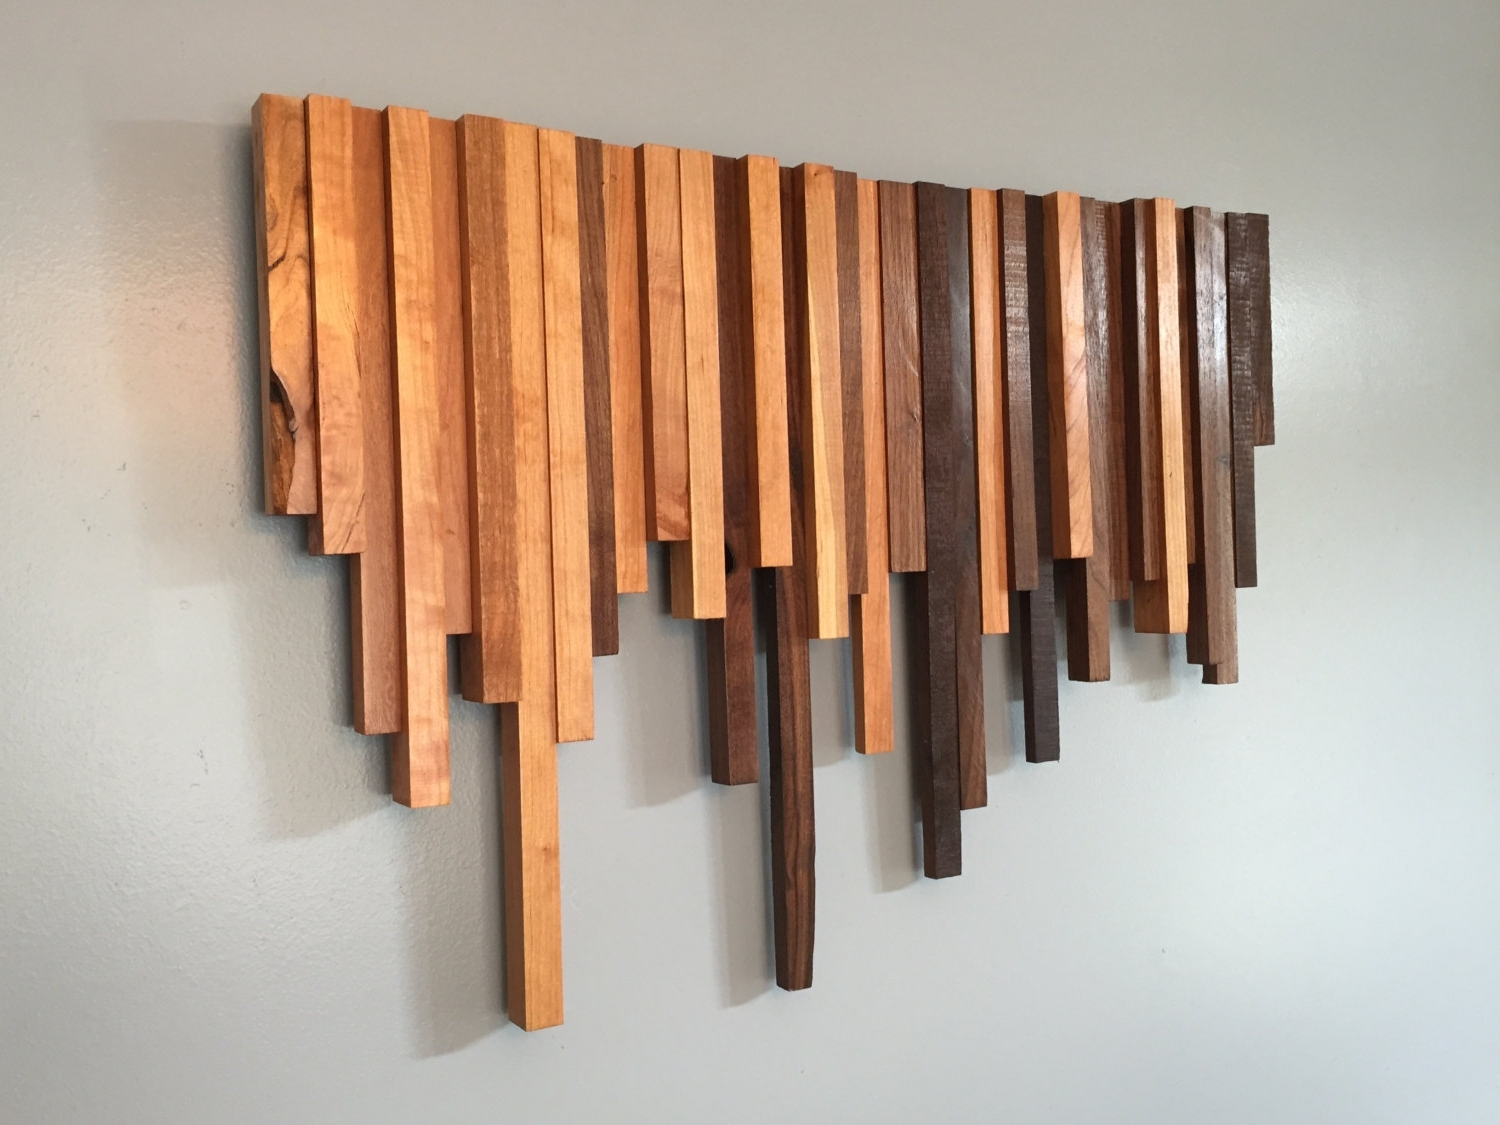 Best And Newest Creative Wood Wall Art Decor : Stylish Wood Wall Art Decor Inside Wood Wall Art (View 9 of 15)